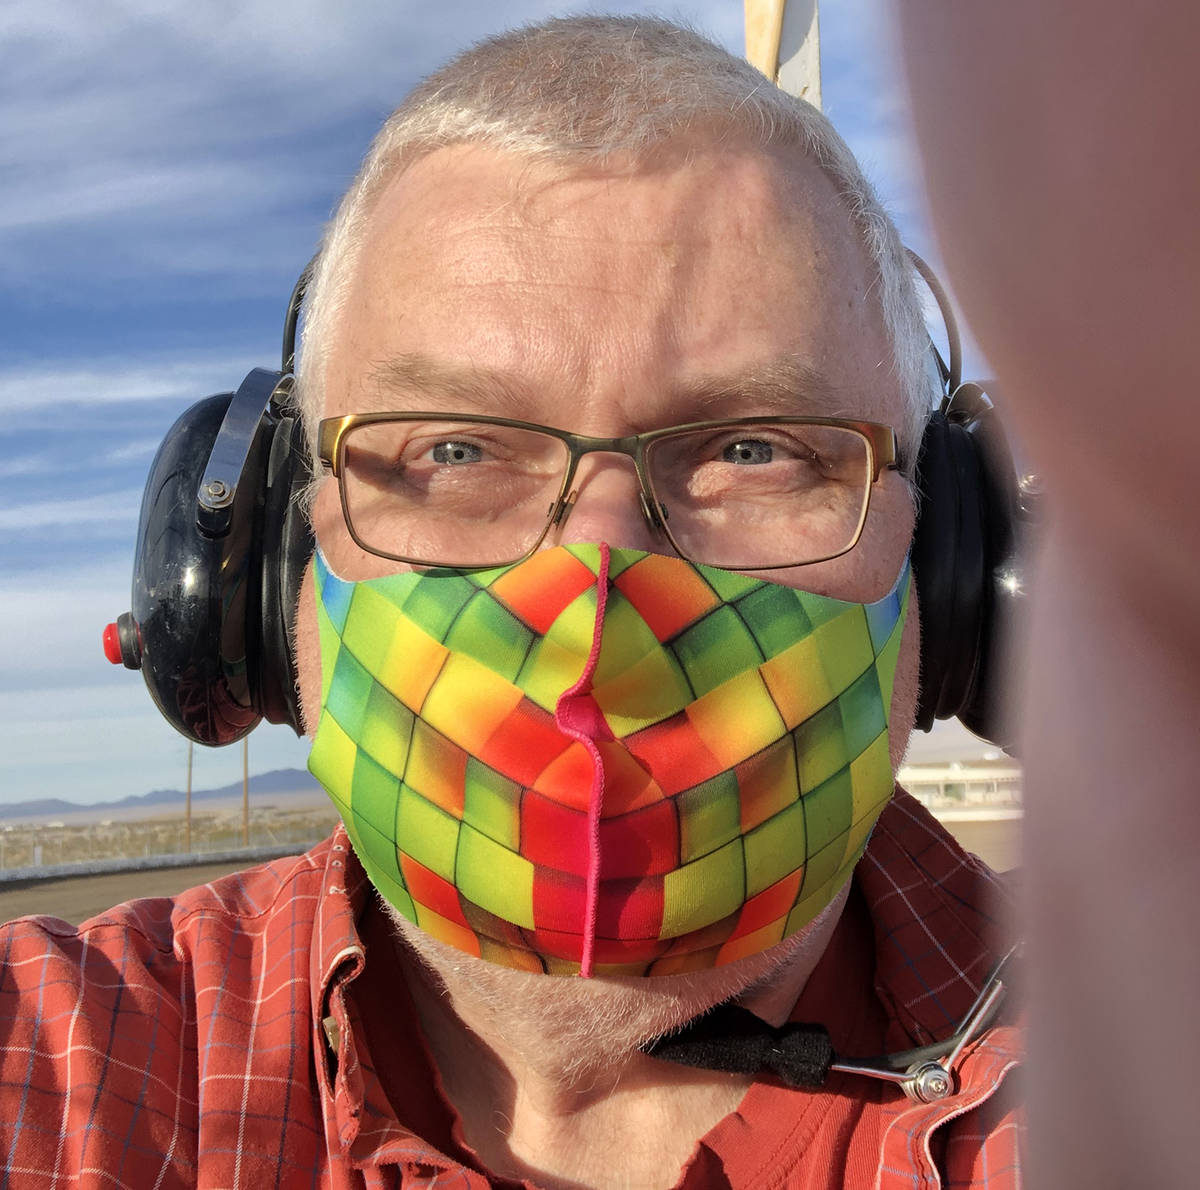 Tom Rysinski/Pahrump Valley Times Mask up, headset on. Ready for racing at Pahrump Valley Speedway.